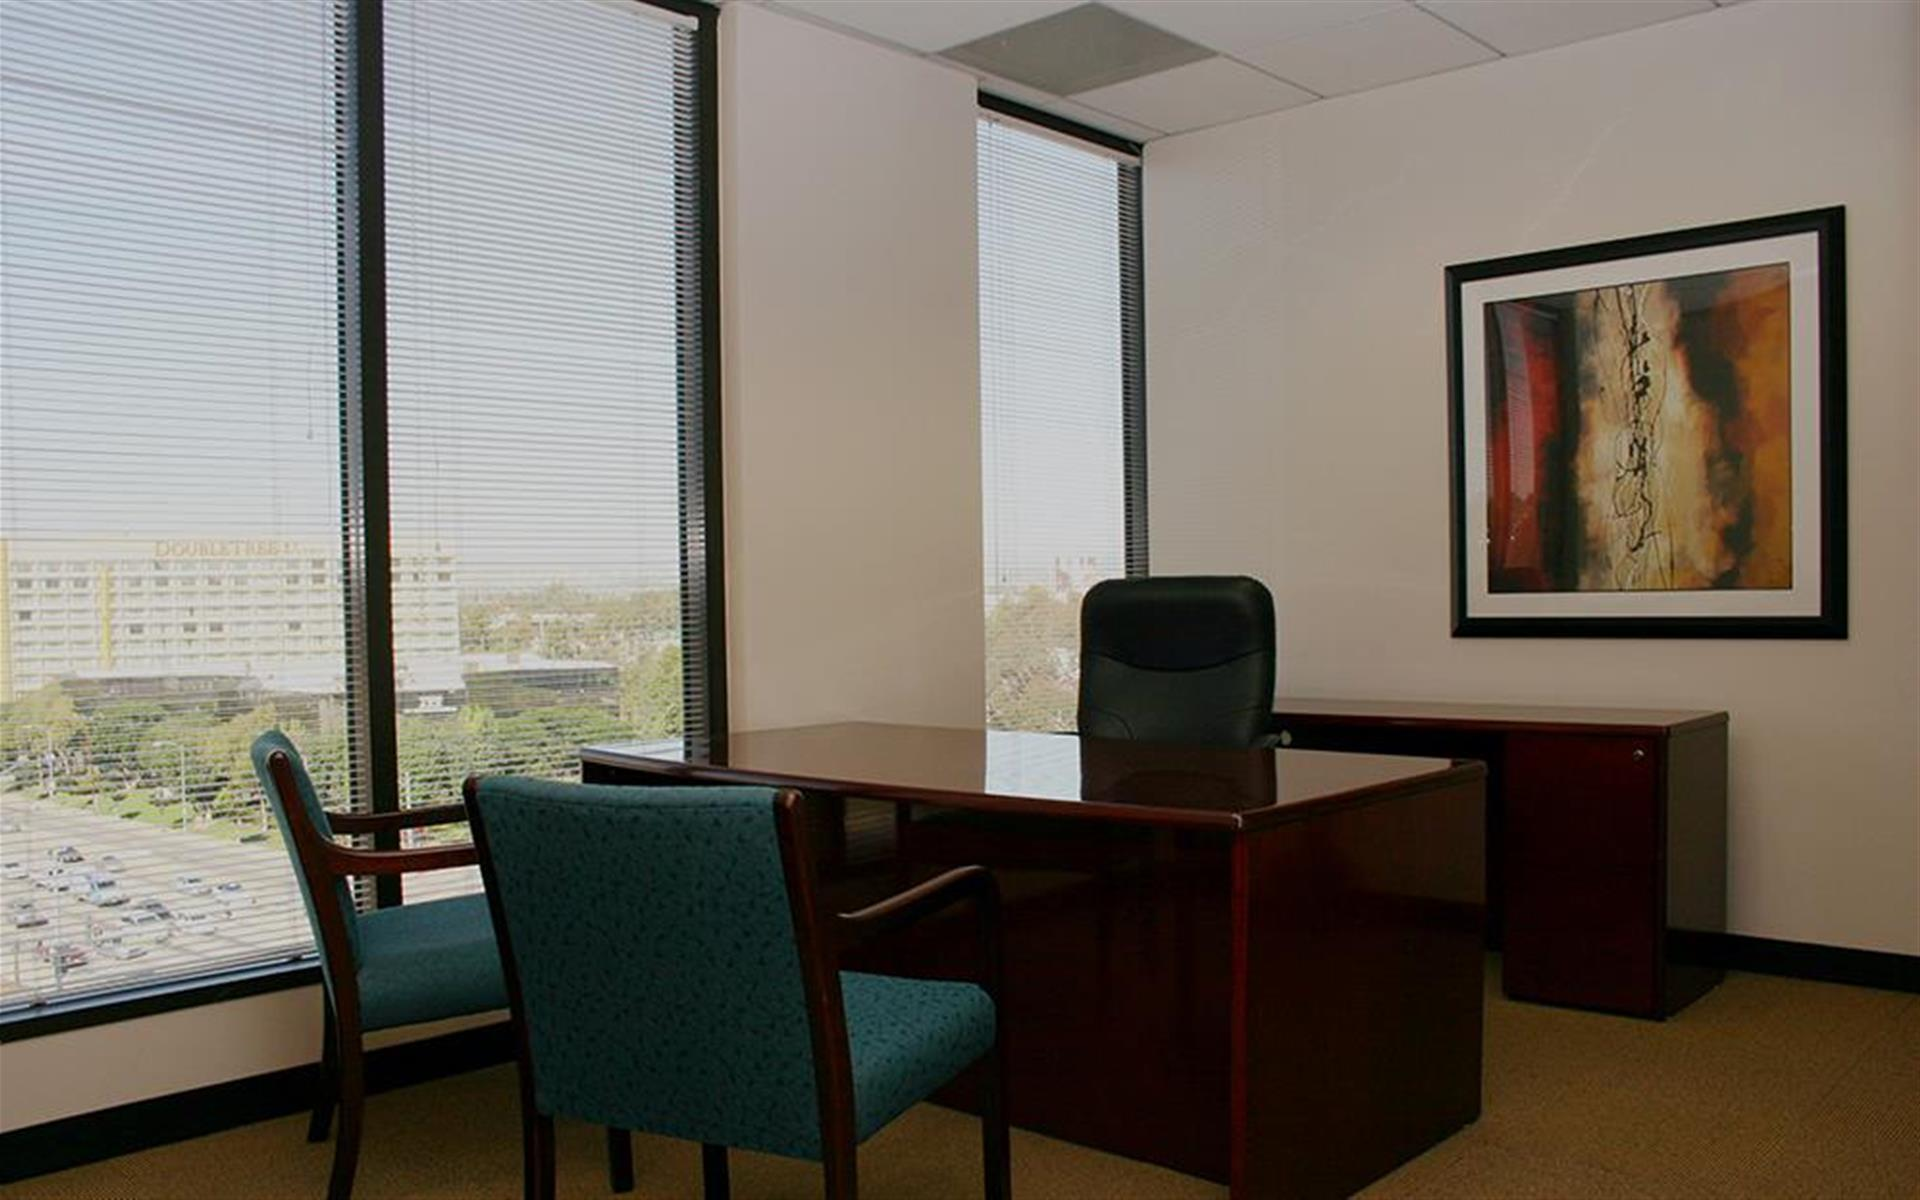 (400) Culver City - 4 office suite